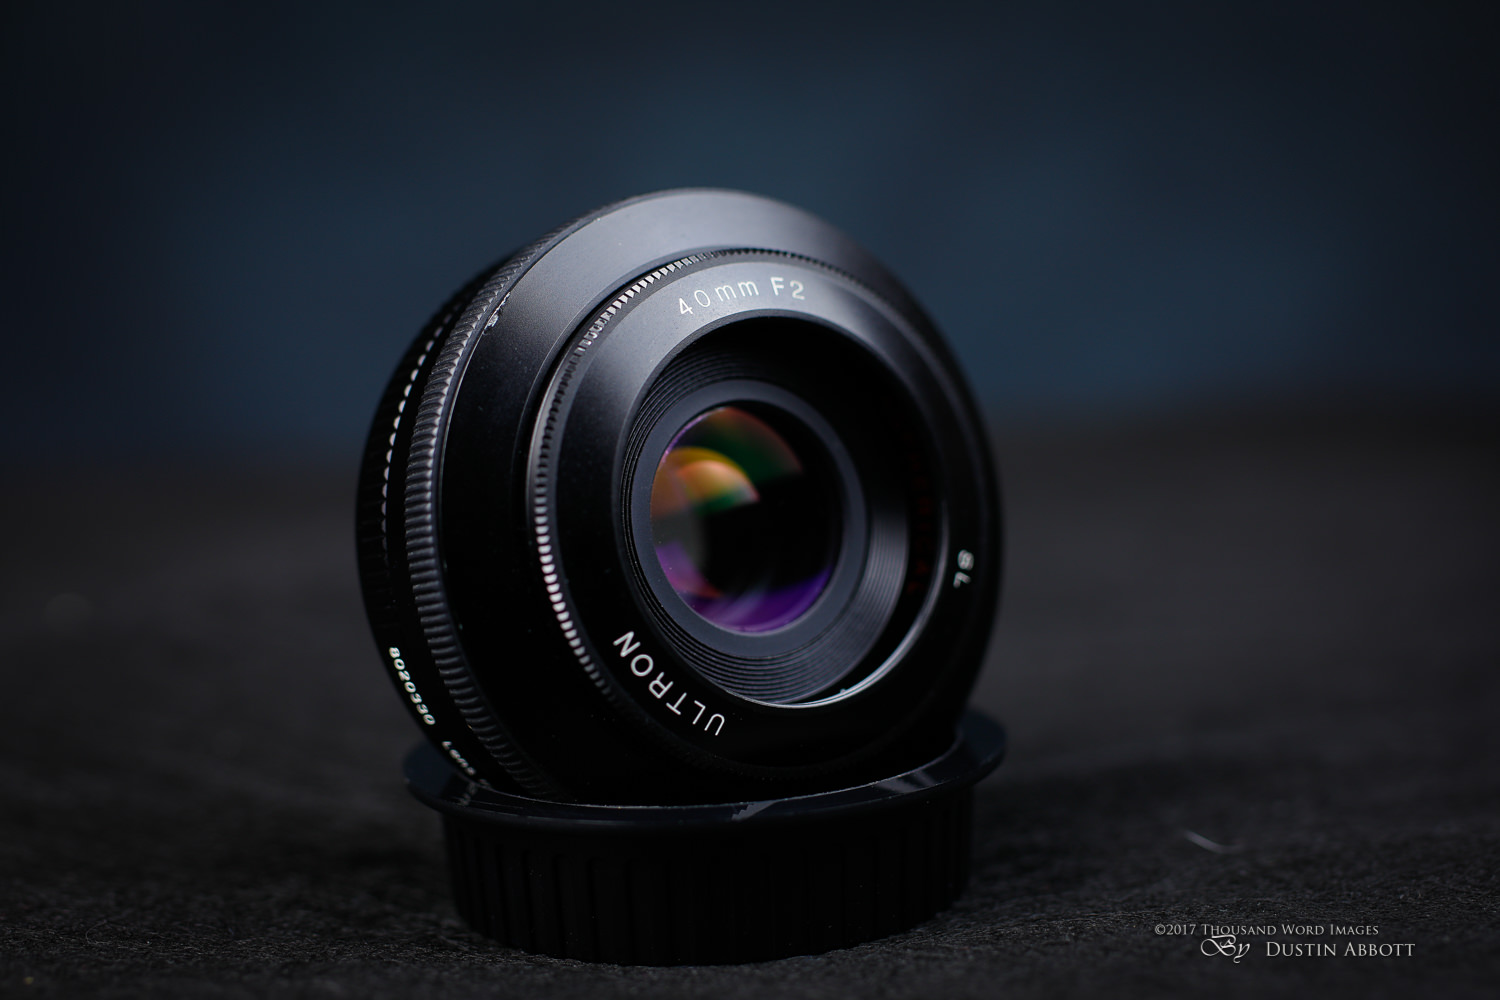 Voigtländer 28mm f/2 Ultron Review - Ken Rockwell